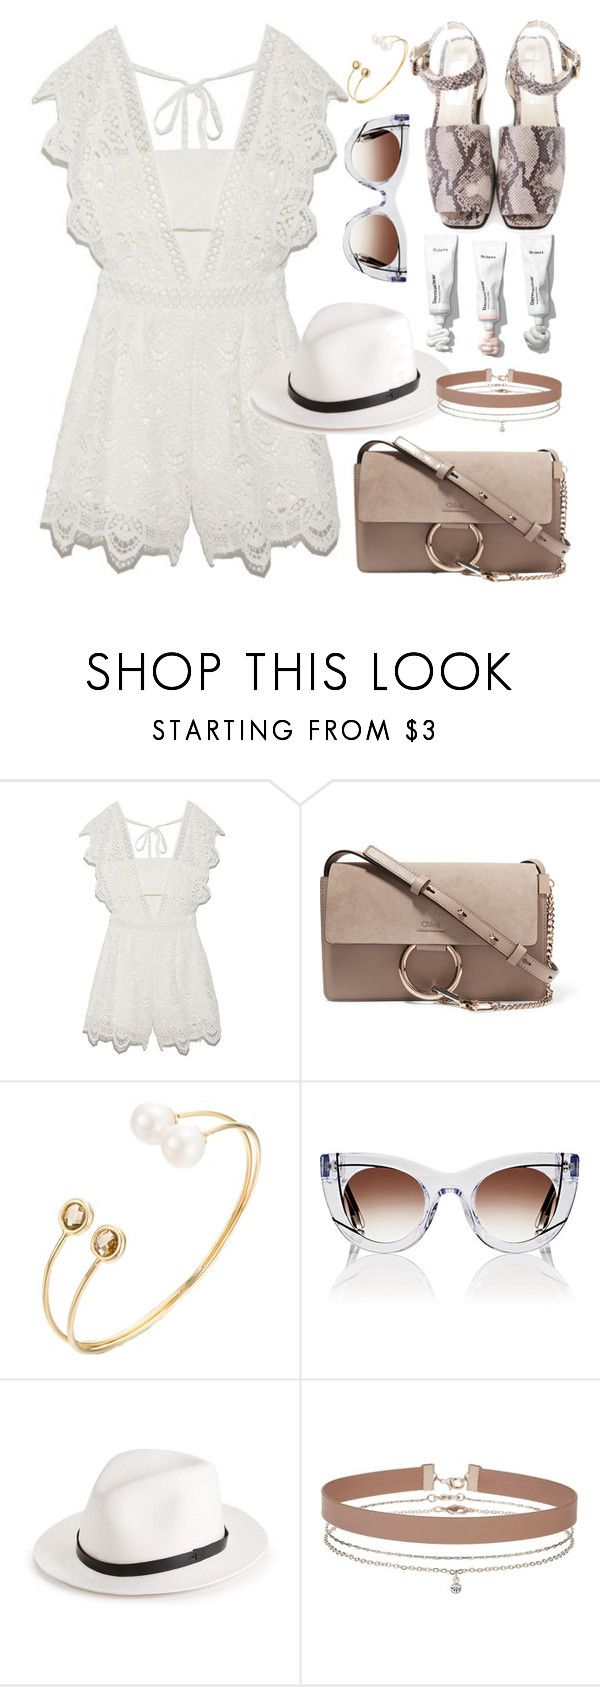 """""""Vacation done, now I can relax :)"""" by lidia-solymosi ❤ liked on Polyvore featuring Chloé, Thierry Lasry, rag & bone and Miss Selfridge"""